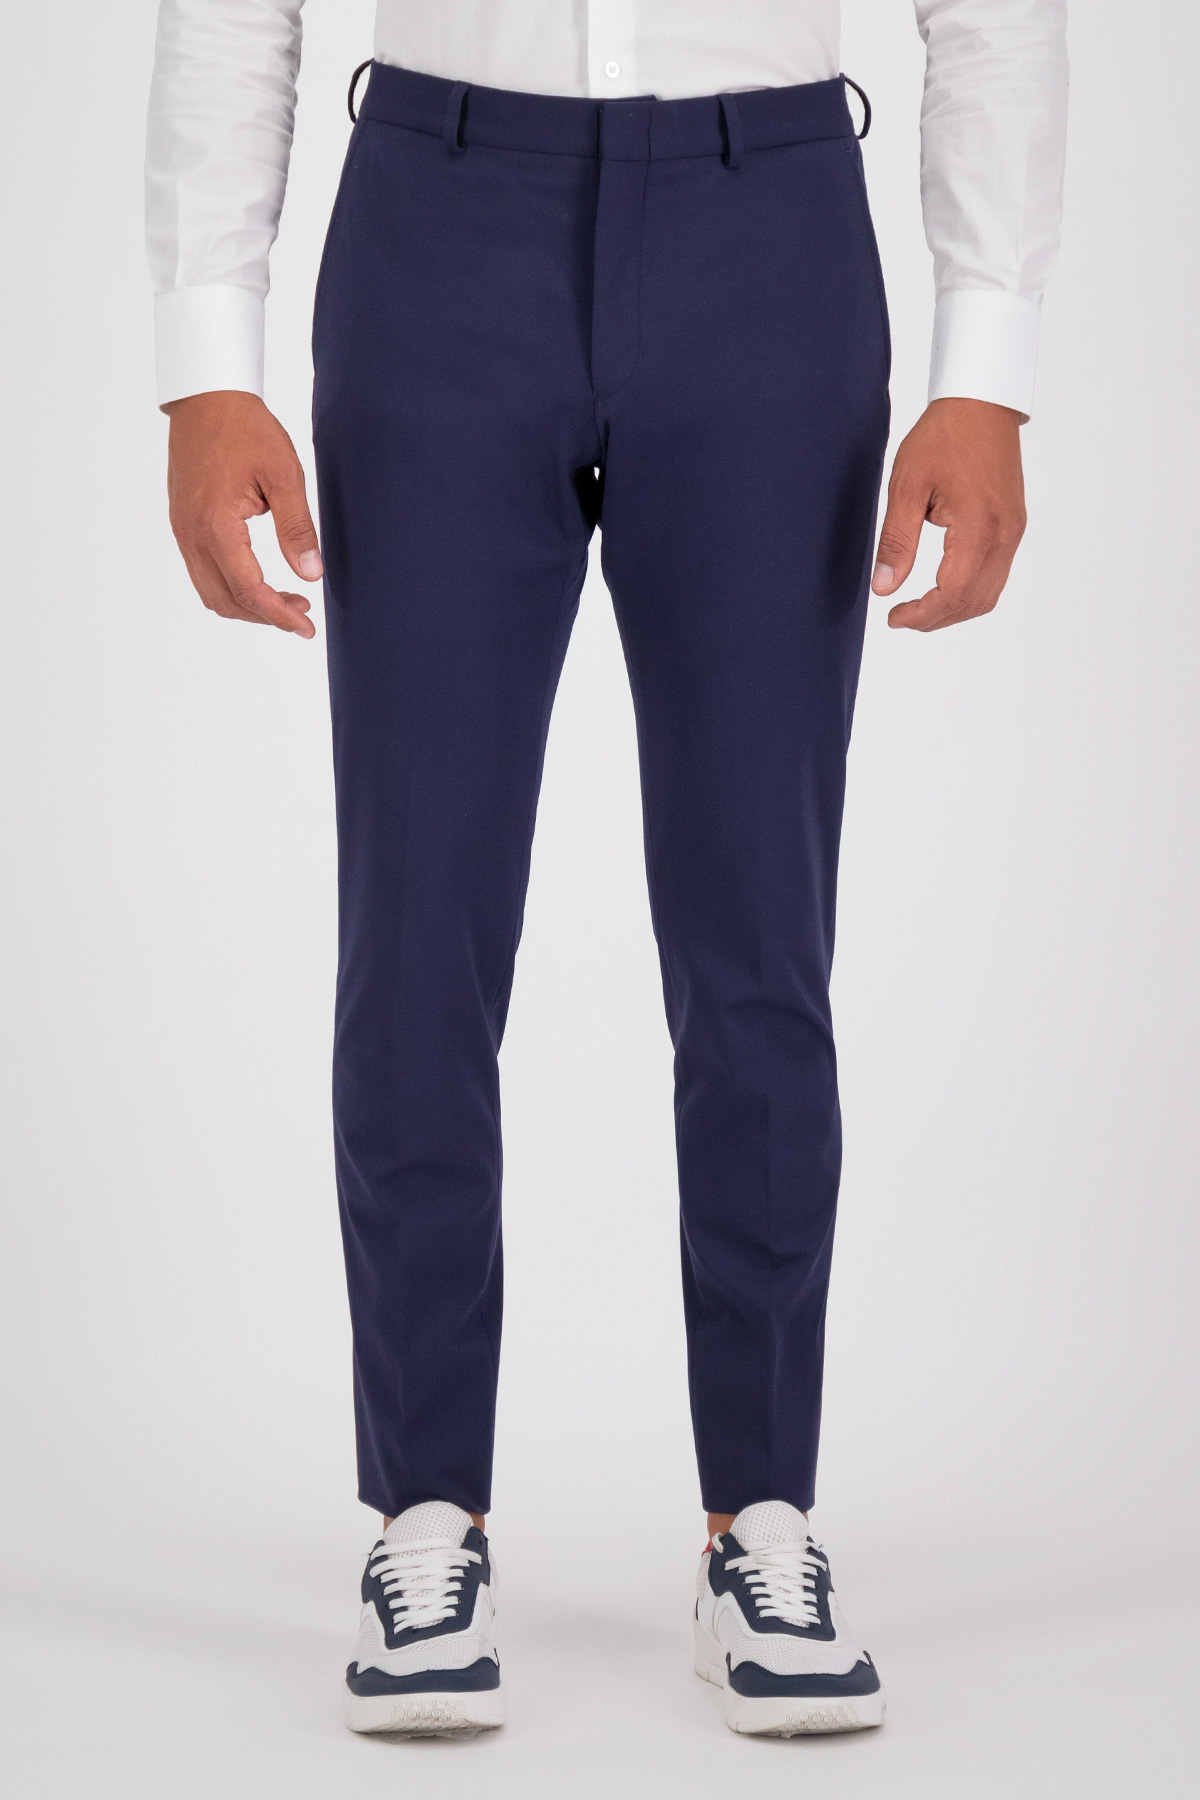 PANTALON VESTIR AZUL MARINO SLIM FIT LMENTAL